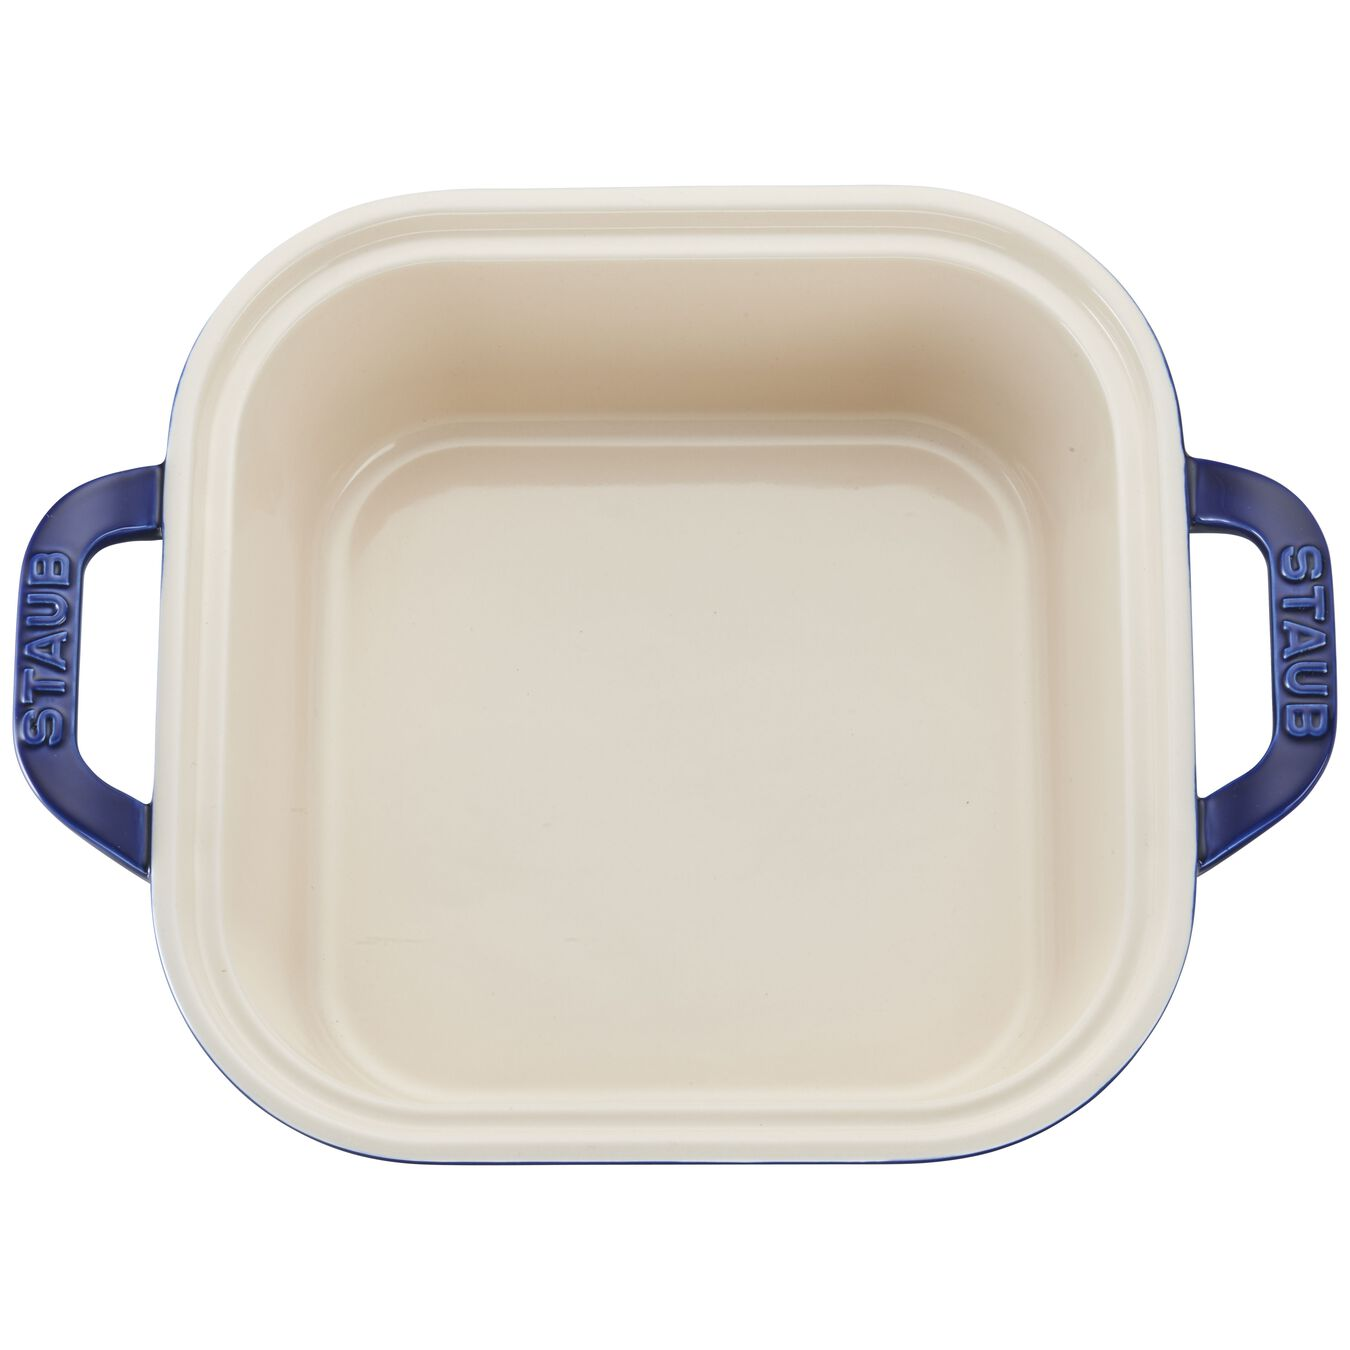 9-inch X 9-inch Square Covered Baking Dish - Dark Blue,,large 6